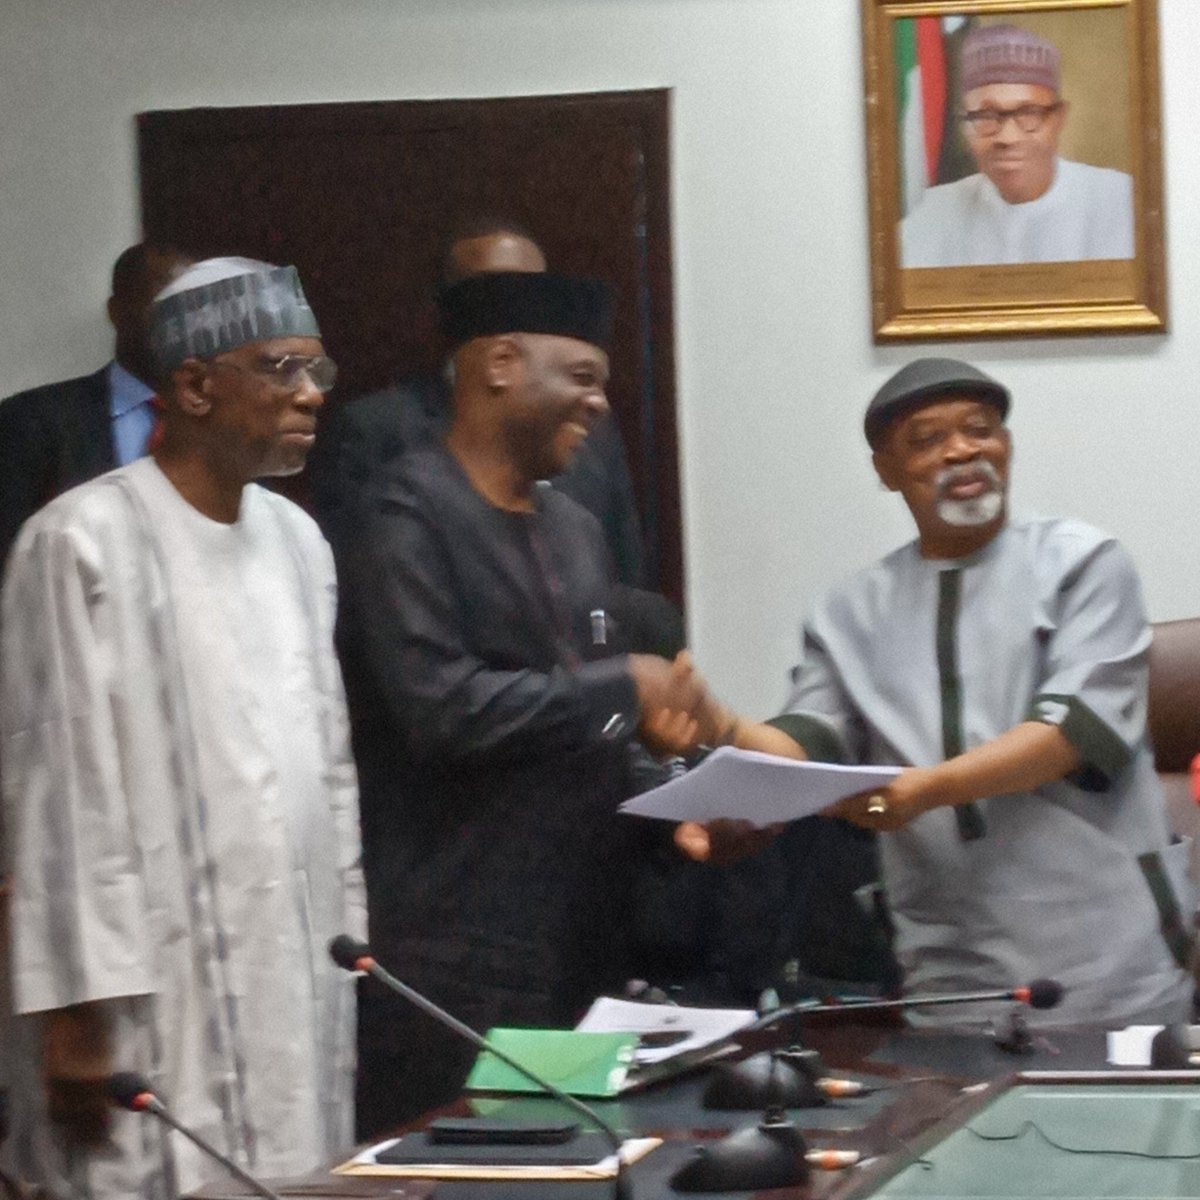 FG ASUU meeting ends Okay ng 2 - FG, ASUU meeting yields positive result as they sign deal to end strike